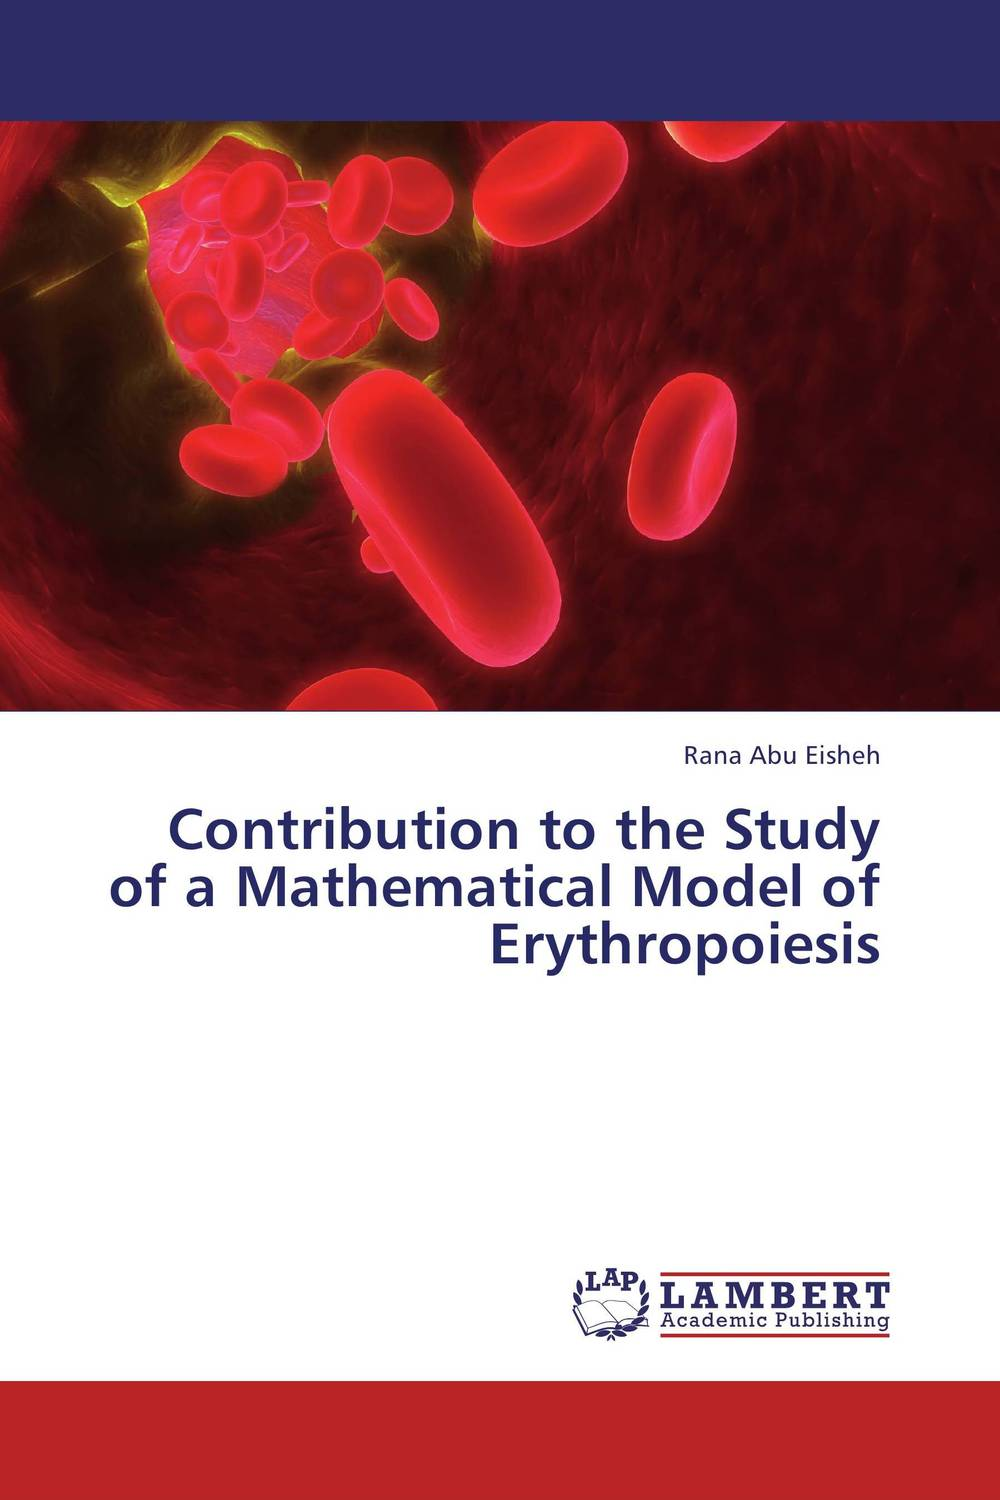 Contribution to the Study of a Mathematical Model of Erythropoiesis cmars a new contribution to nonparametric regression with mars